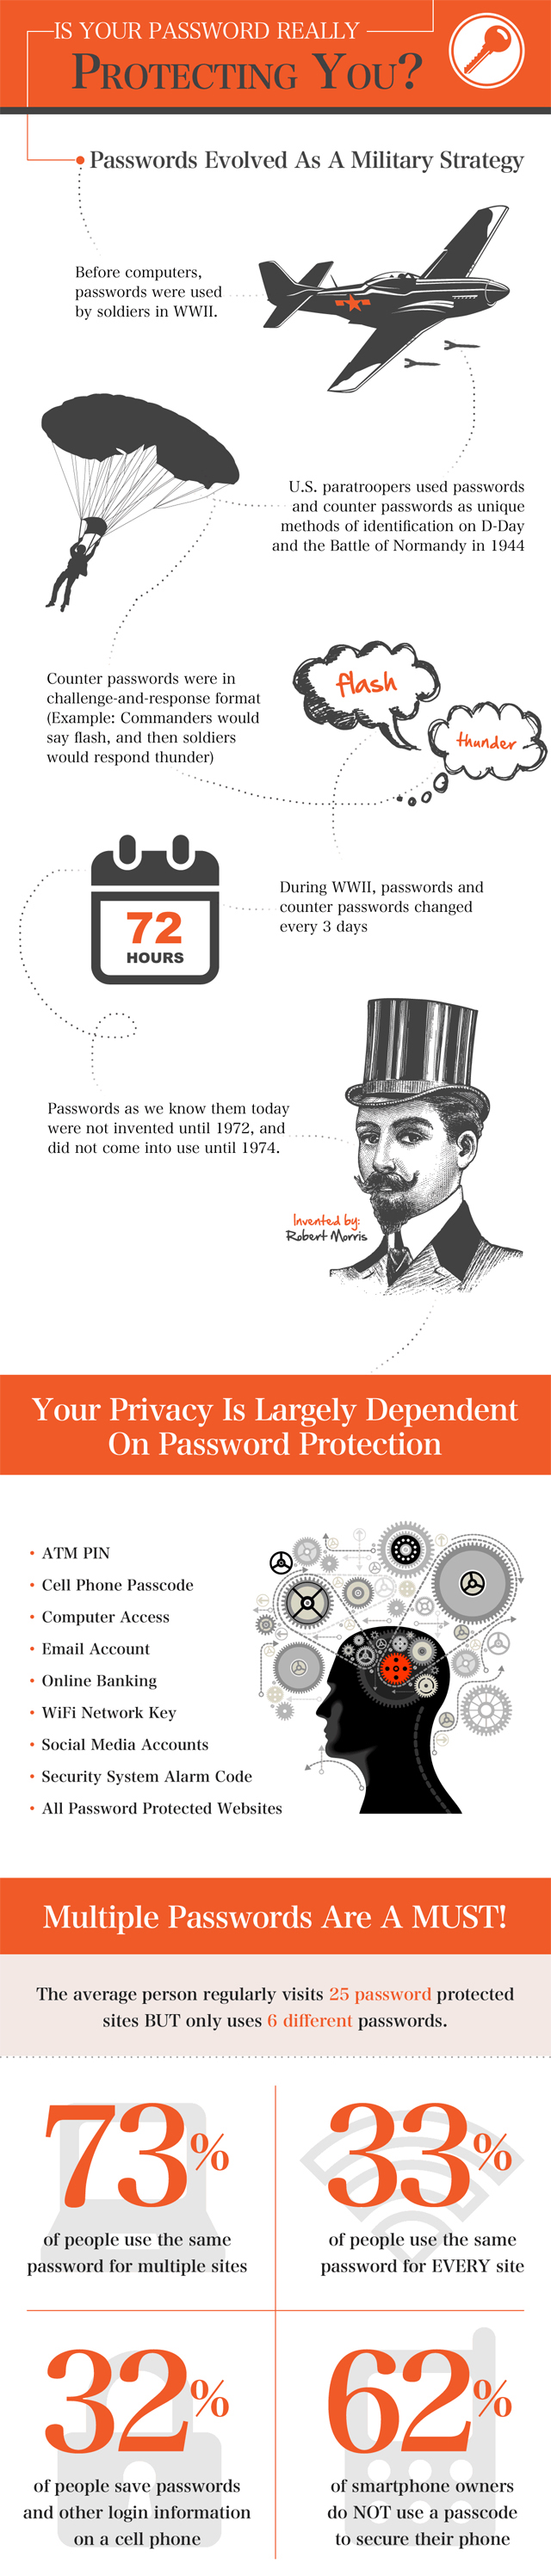 passwordprotection1